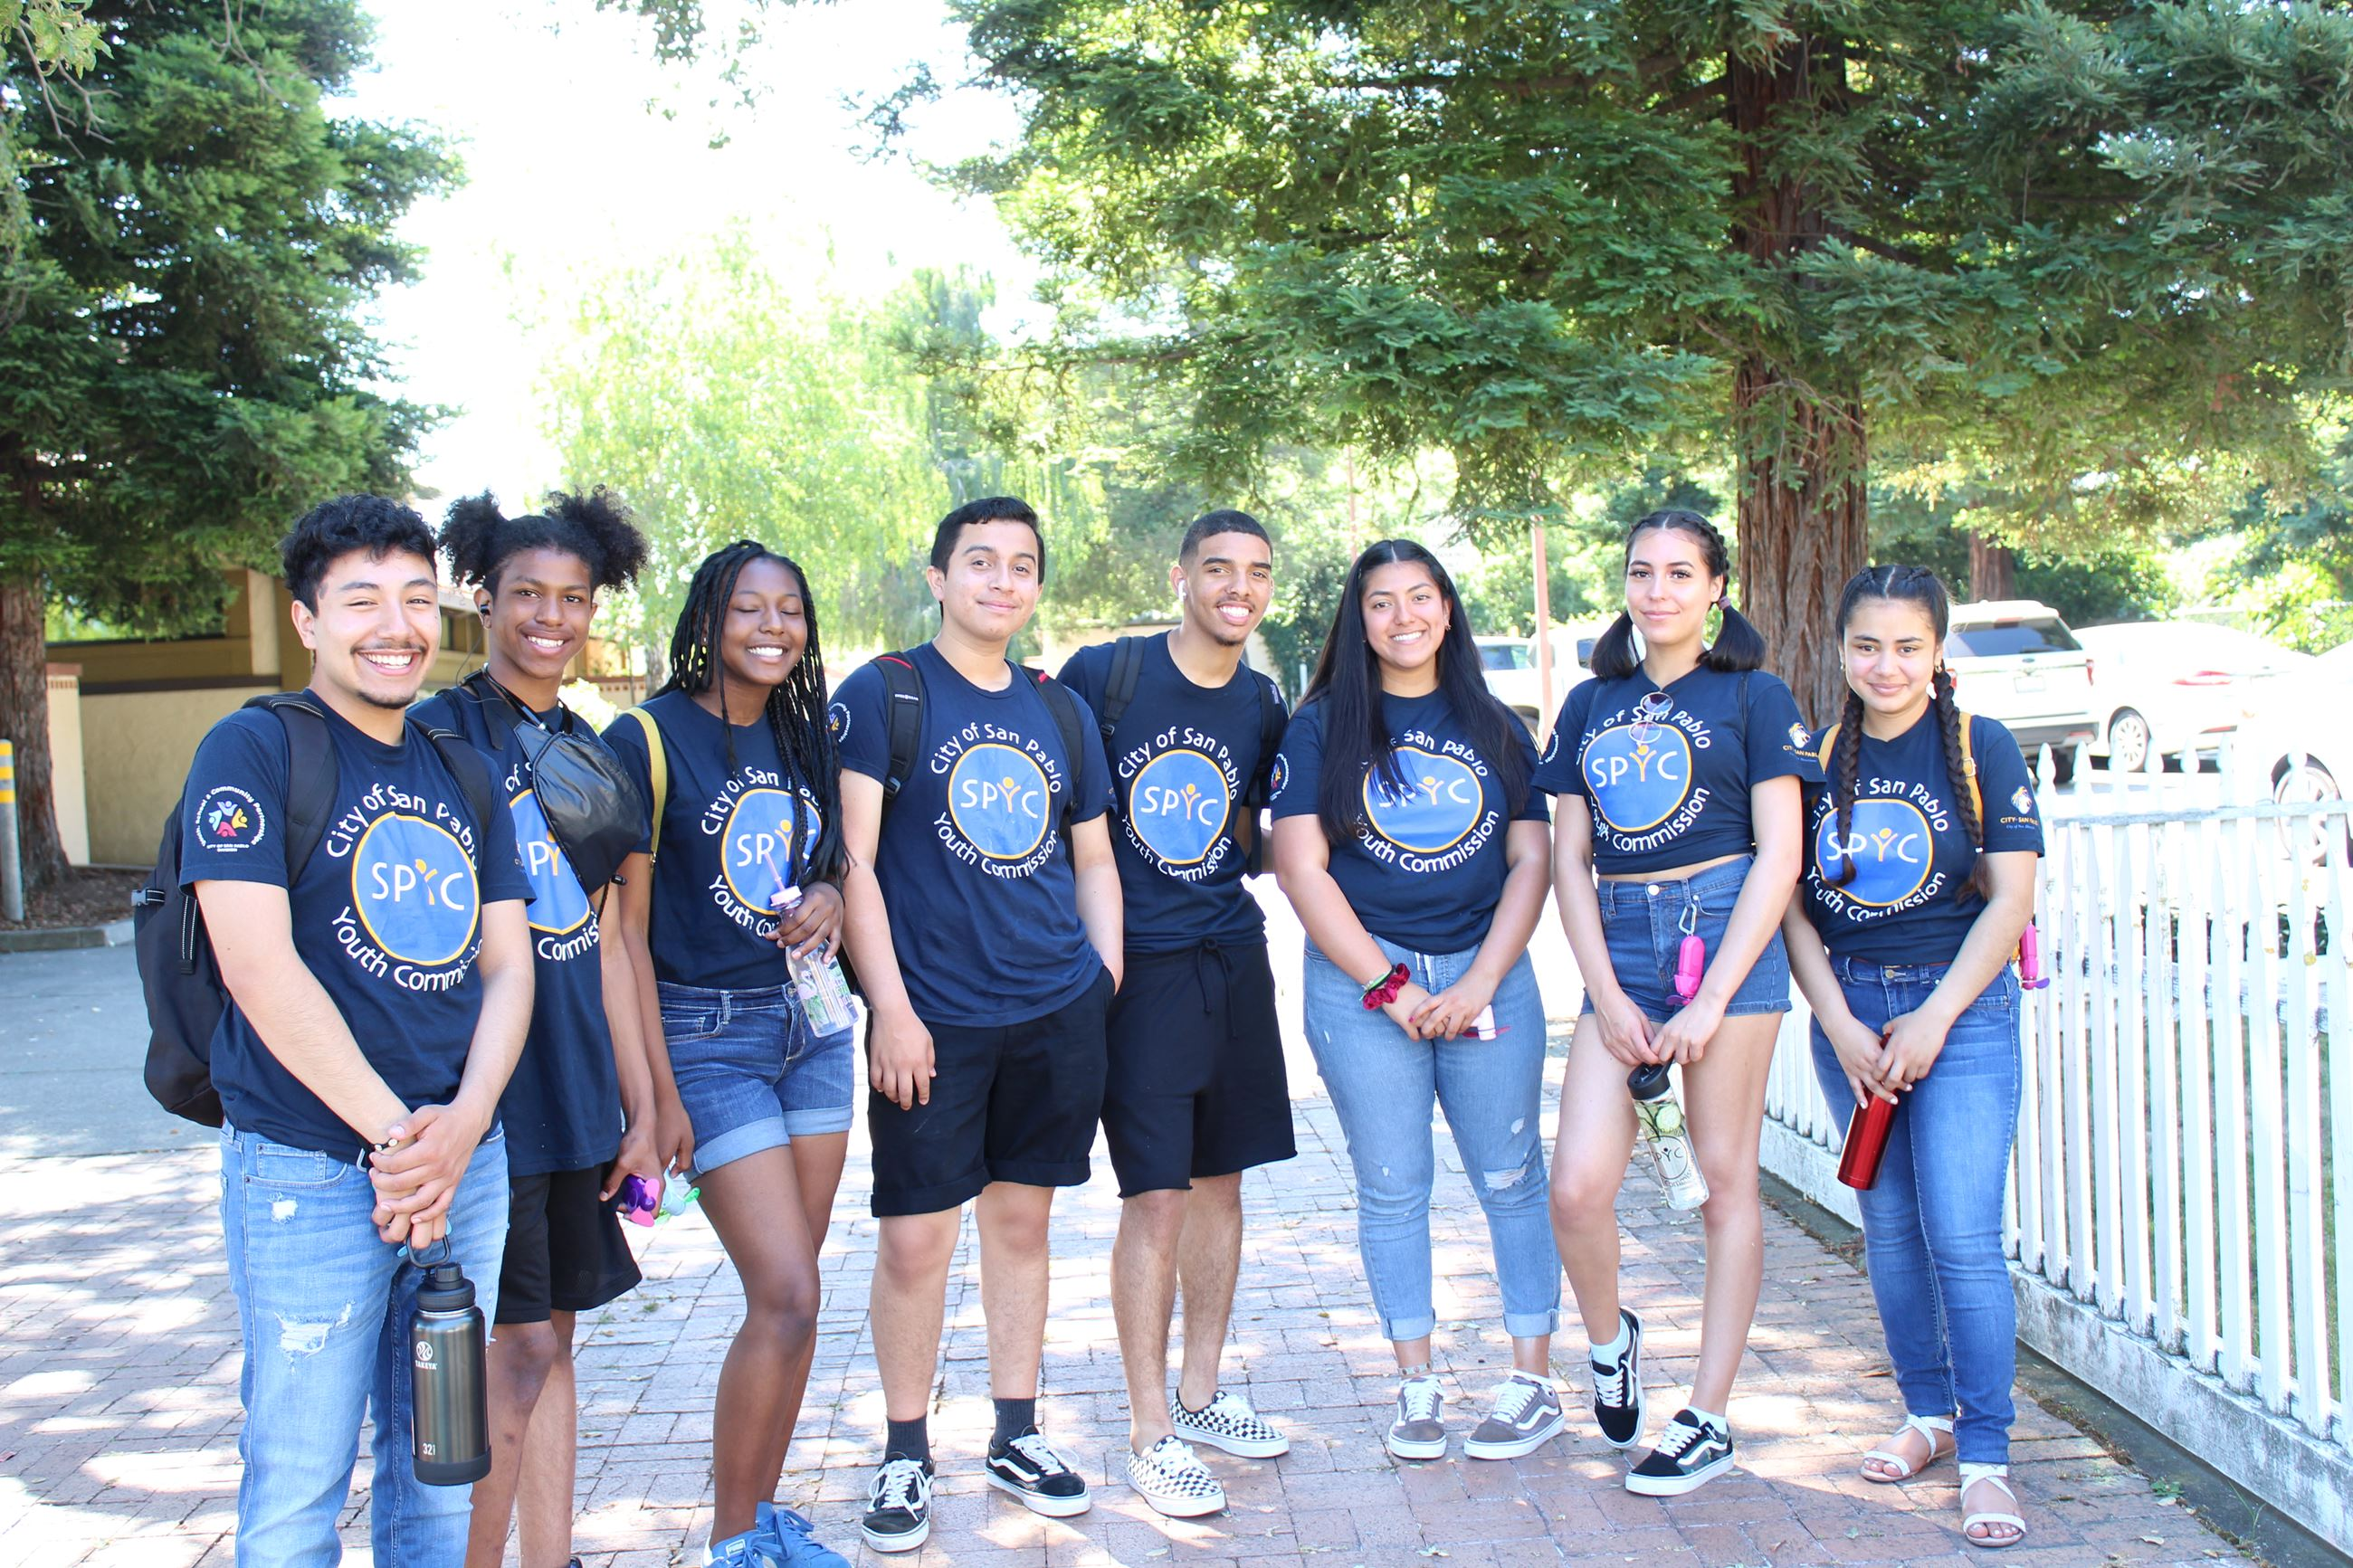 San Pablo Youth Commissioners Posing Before Attending Sacramento State College Tour